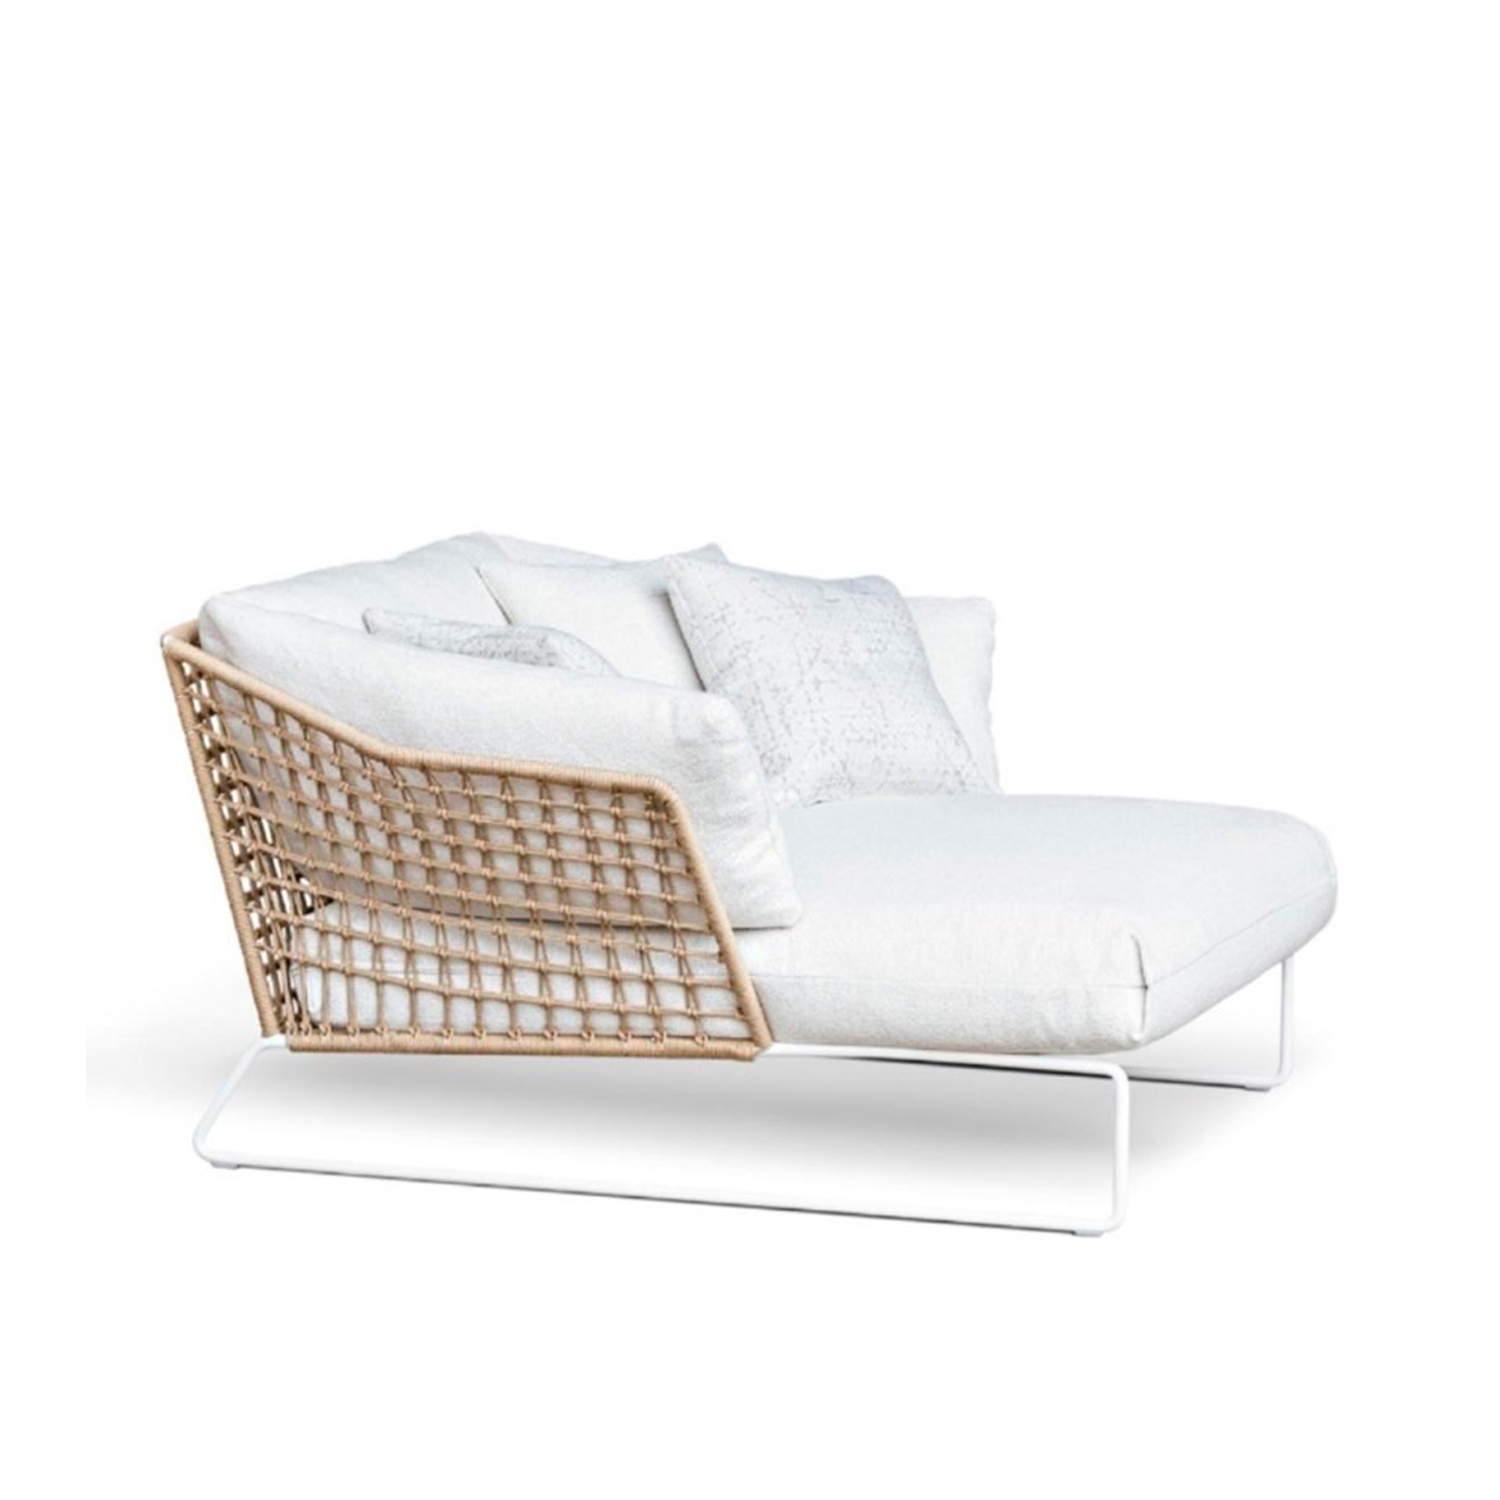 New York Soleil Garden bed - The New York Soleil outdoor collection adds a new element: the lounge armchair.‎ The detailing of the ropes embraces a large comfortable seating area supported by the painted metal rod structure, available in white or anthracite grey.‎